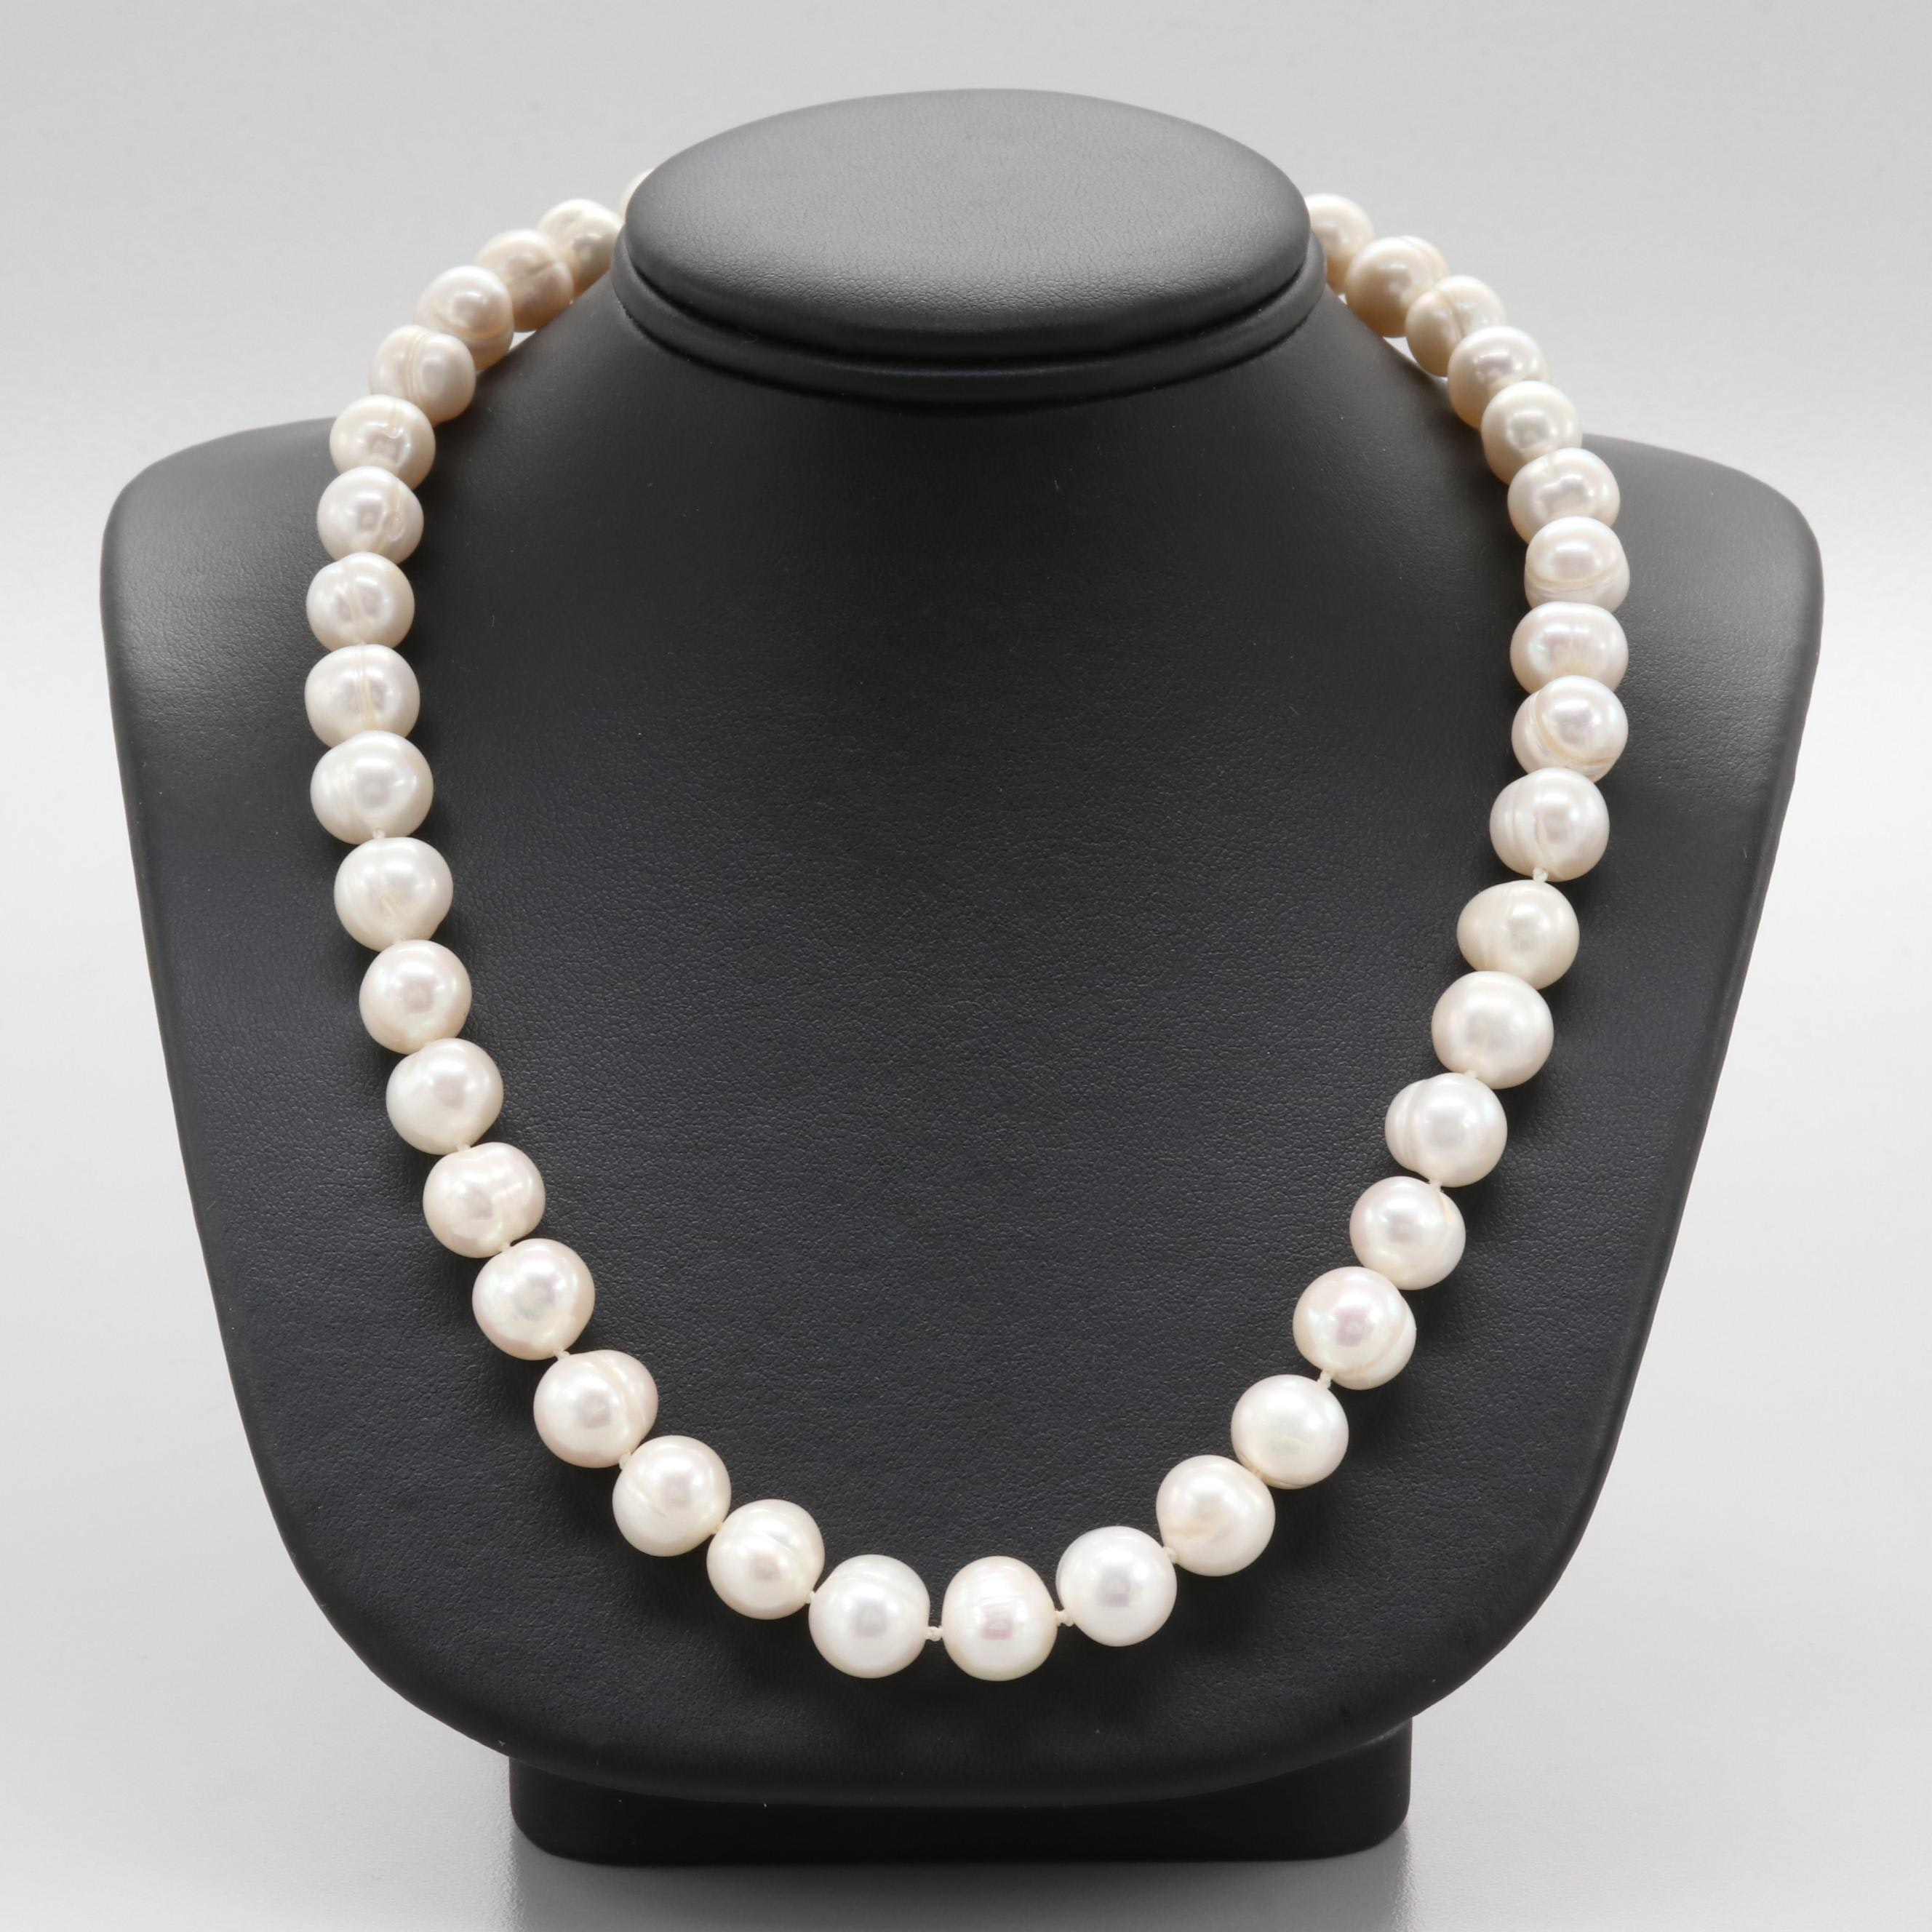 14K Yellow Gold Glass and Cultured Pearl Necklace